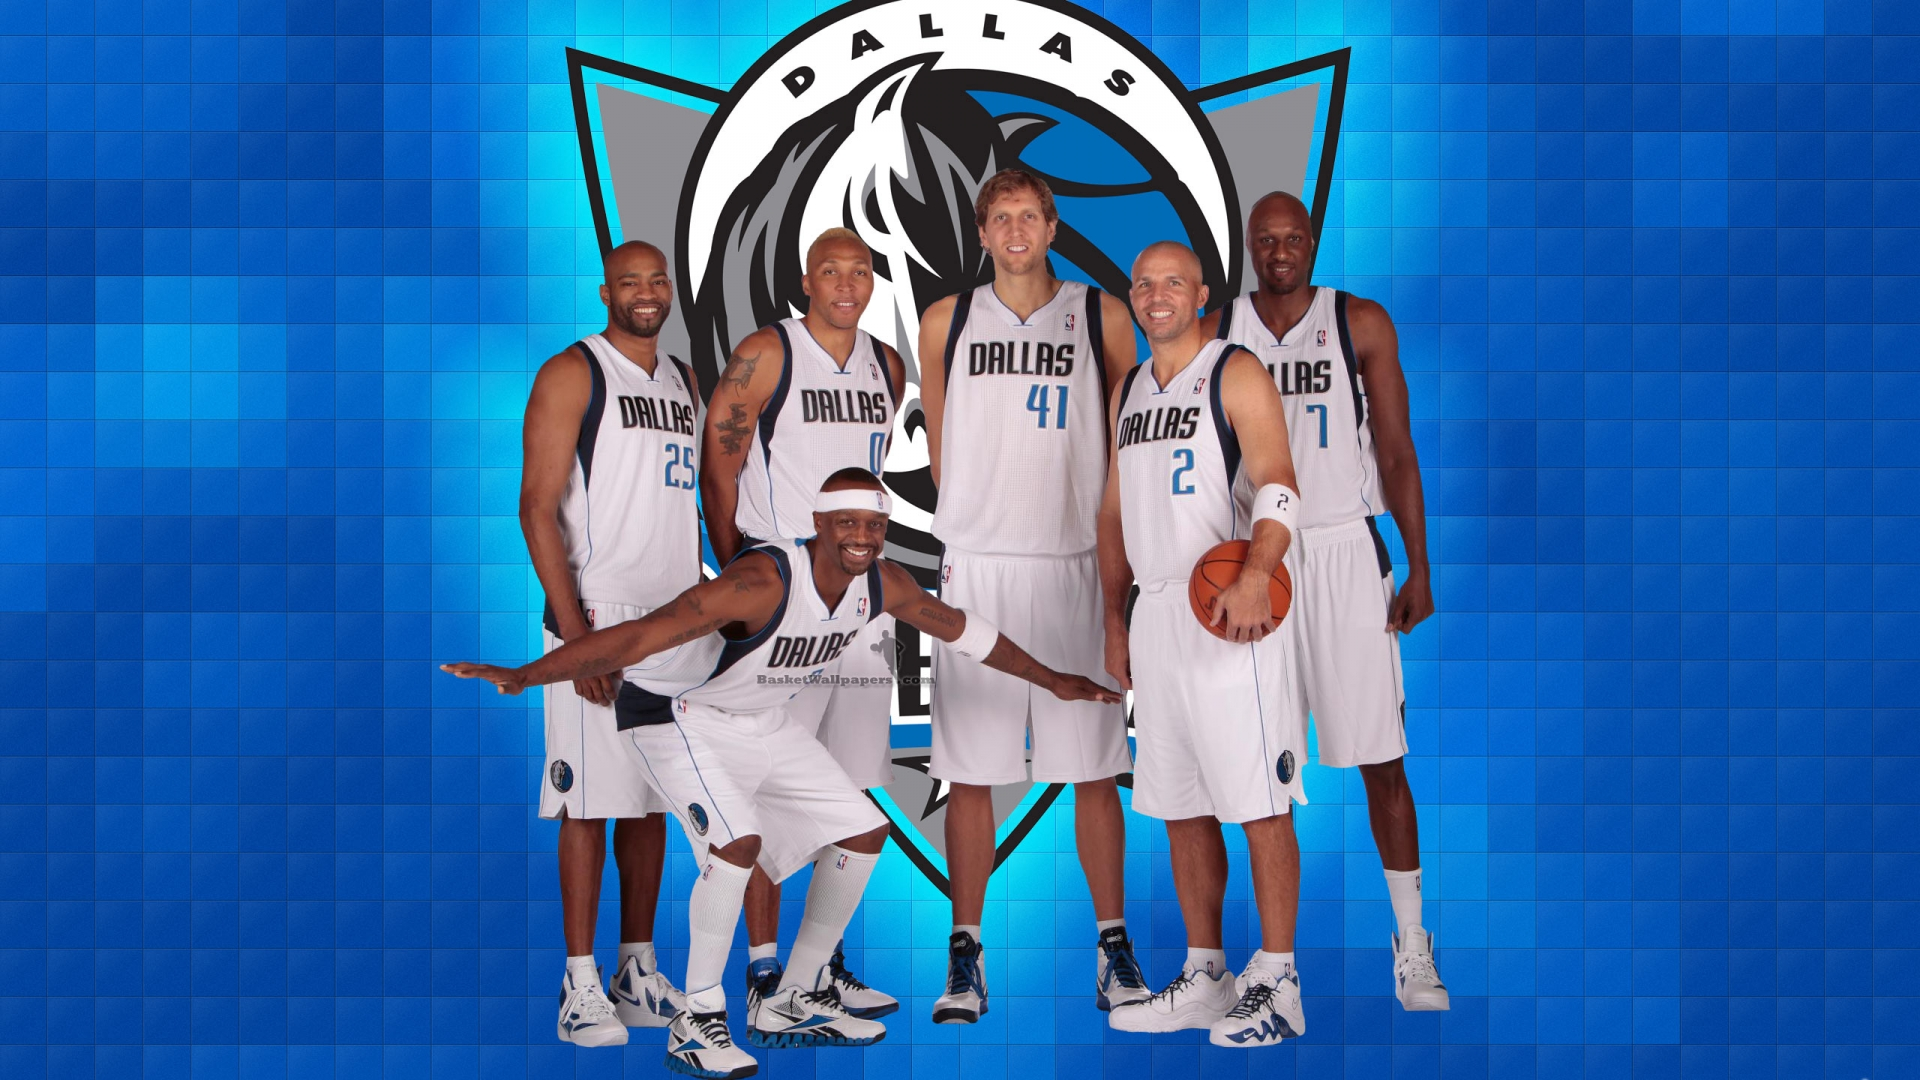 Dallas Mavericks 2012 Team Wallpaper